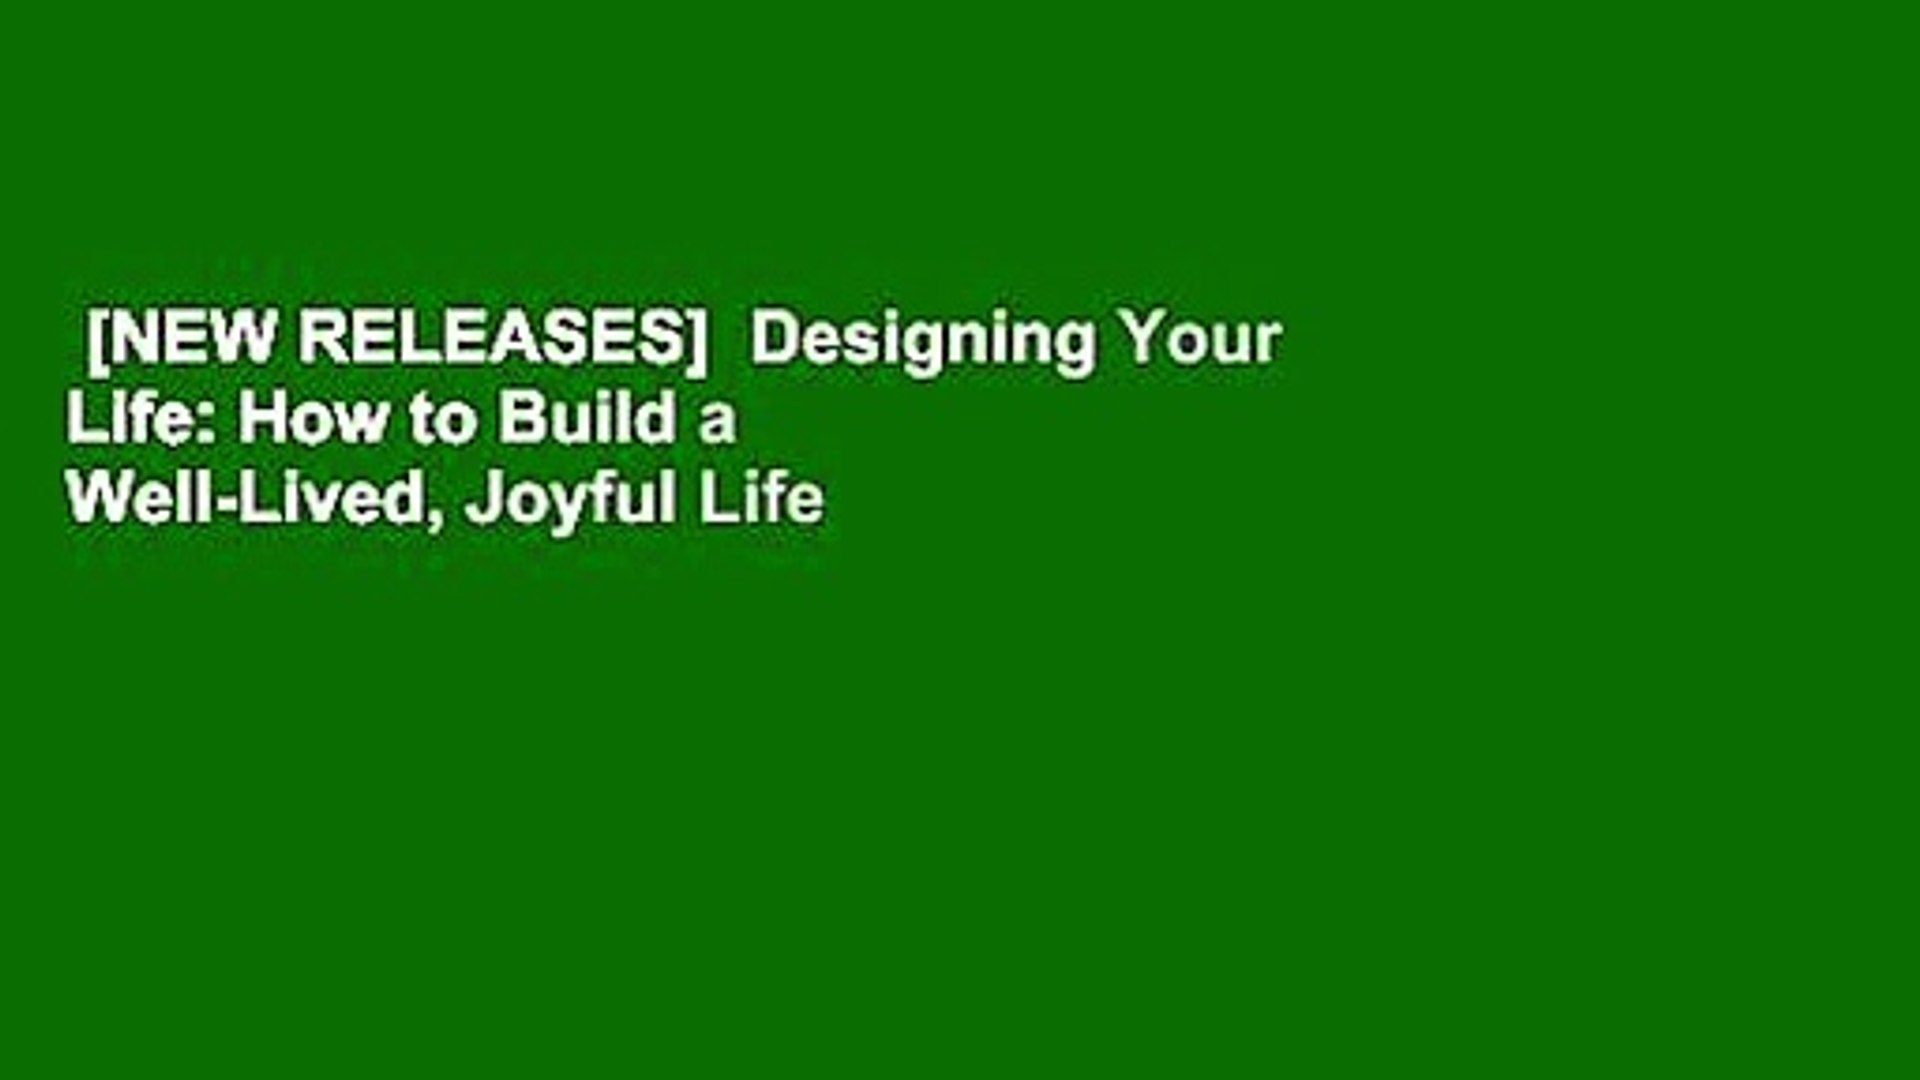 [NEW RELEASES]  Designing Your Life: How to Build a Well-Lived, Joyful Life